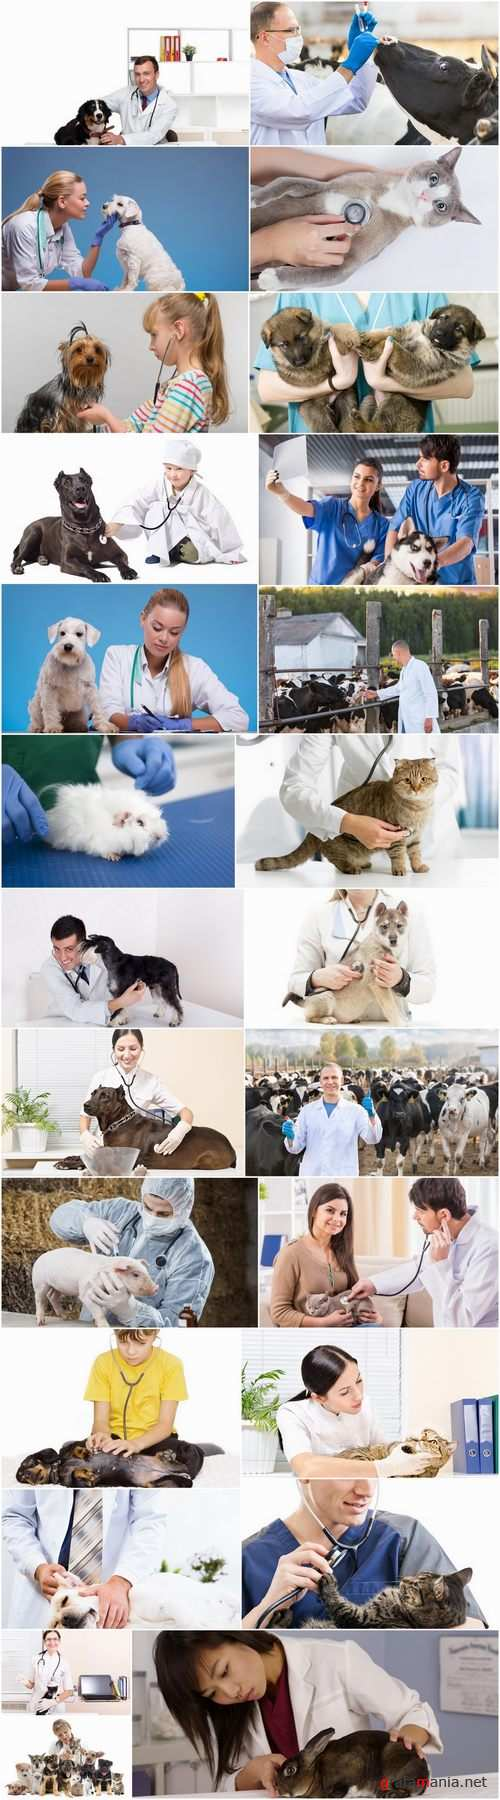 Different veterinarian 25 HQ Jpeg